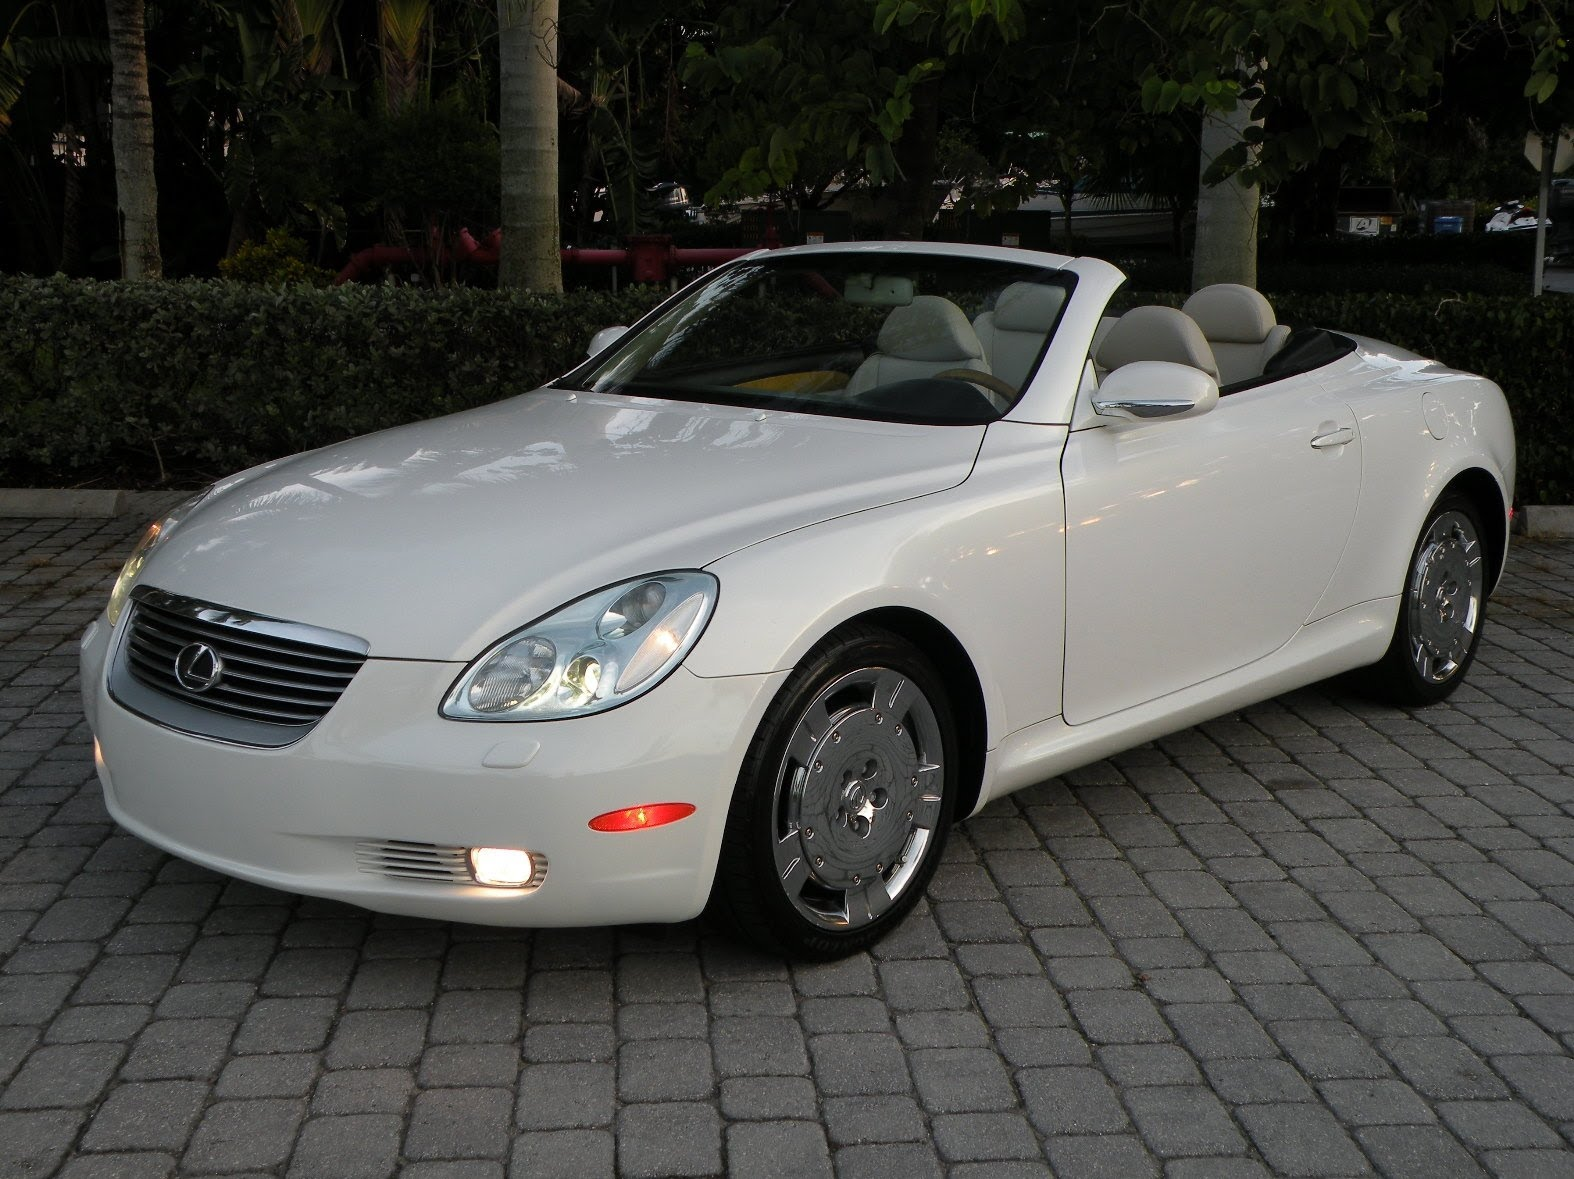 2004 Lexus Sc 430 Photos, Informations, Articles ...